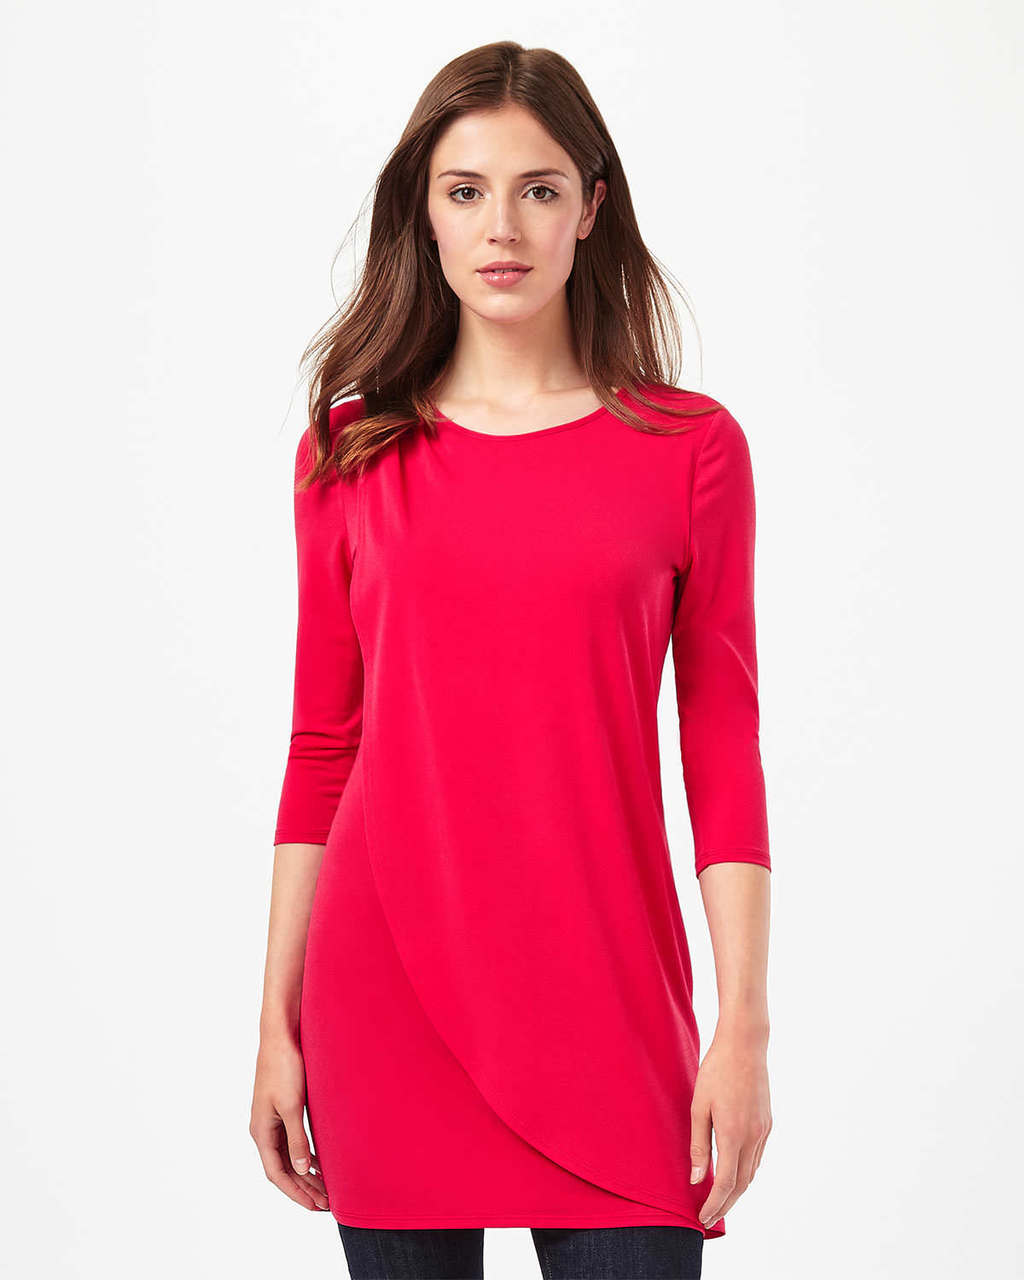 Dotty 3/4 Sleeve Tunic - pattern: plain; style: tunic; predominant colour: true red; occasions: casual; fibres: polyester/polyamide - stretch; fit: body skimming; neckline: crew; length: mid thigh; sleeve length: 3/4 length; sleeve style: standard; pattern type: fabric; texture group: jersey - stretchy/drapey; season: s/s 2016; wardrobe: highlight